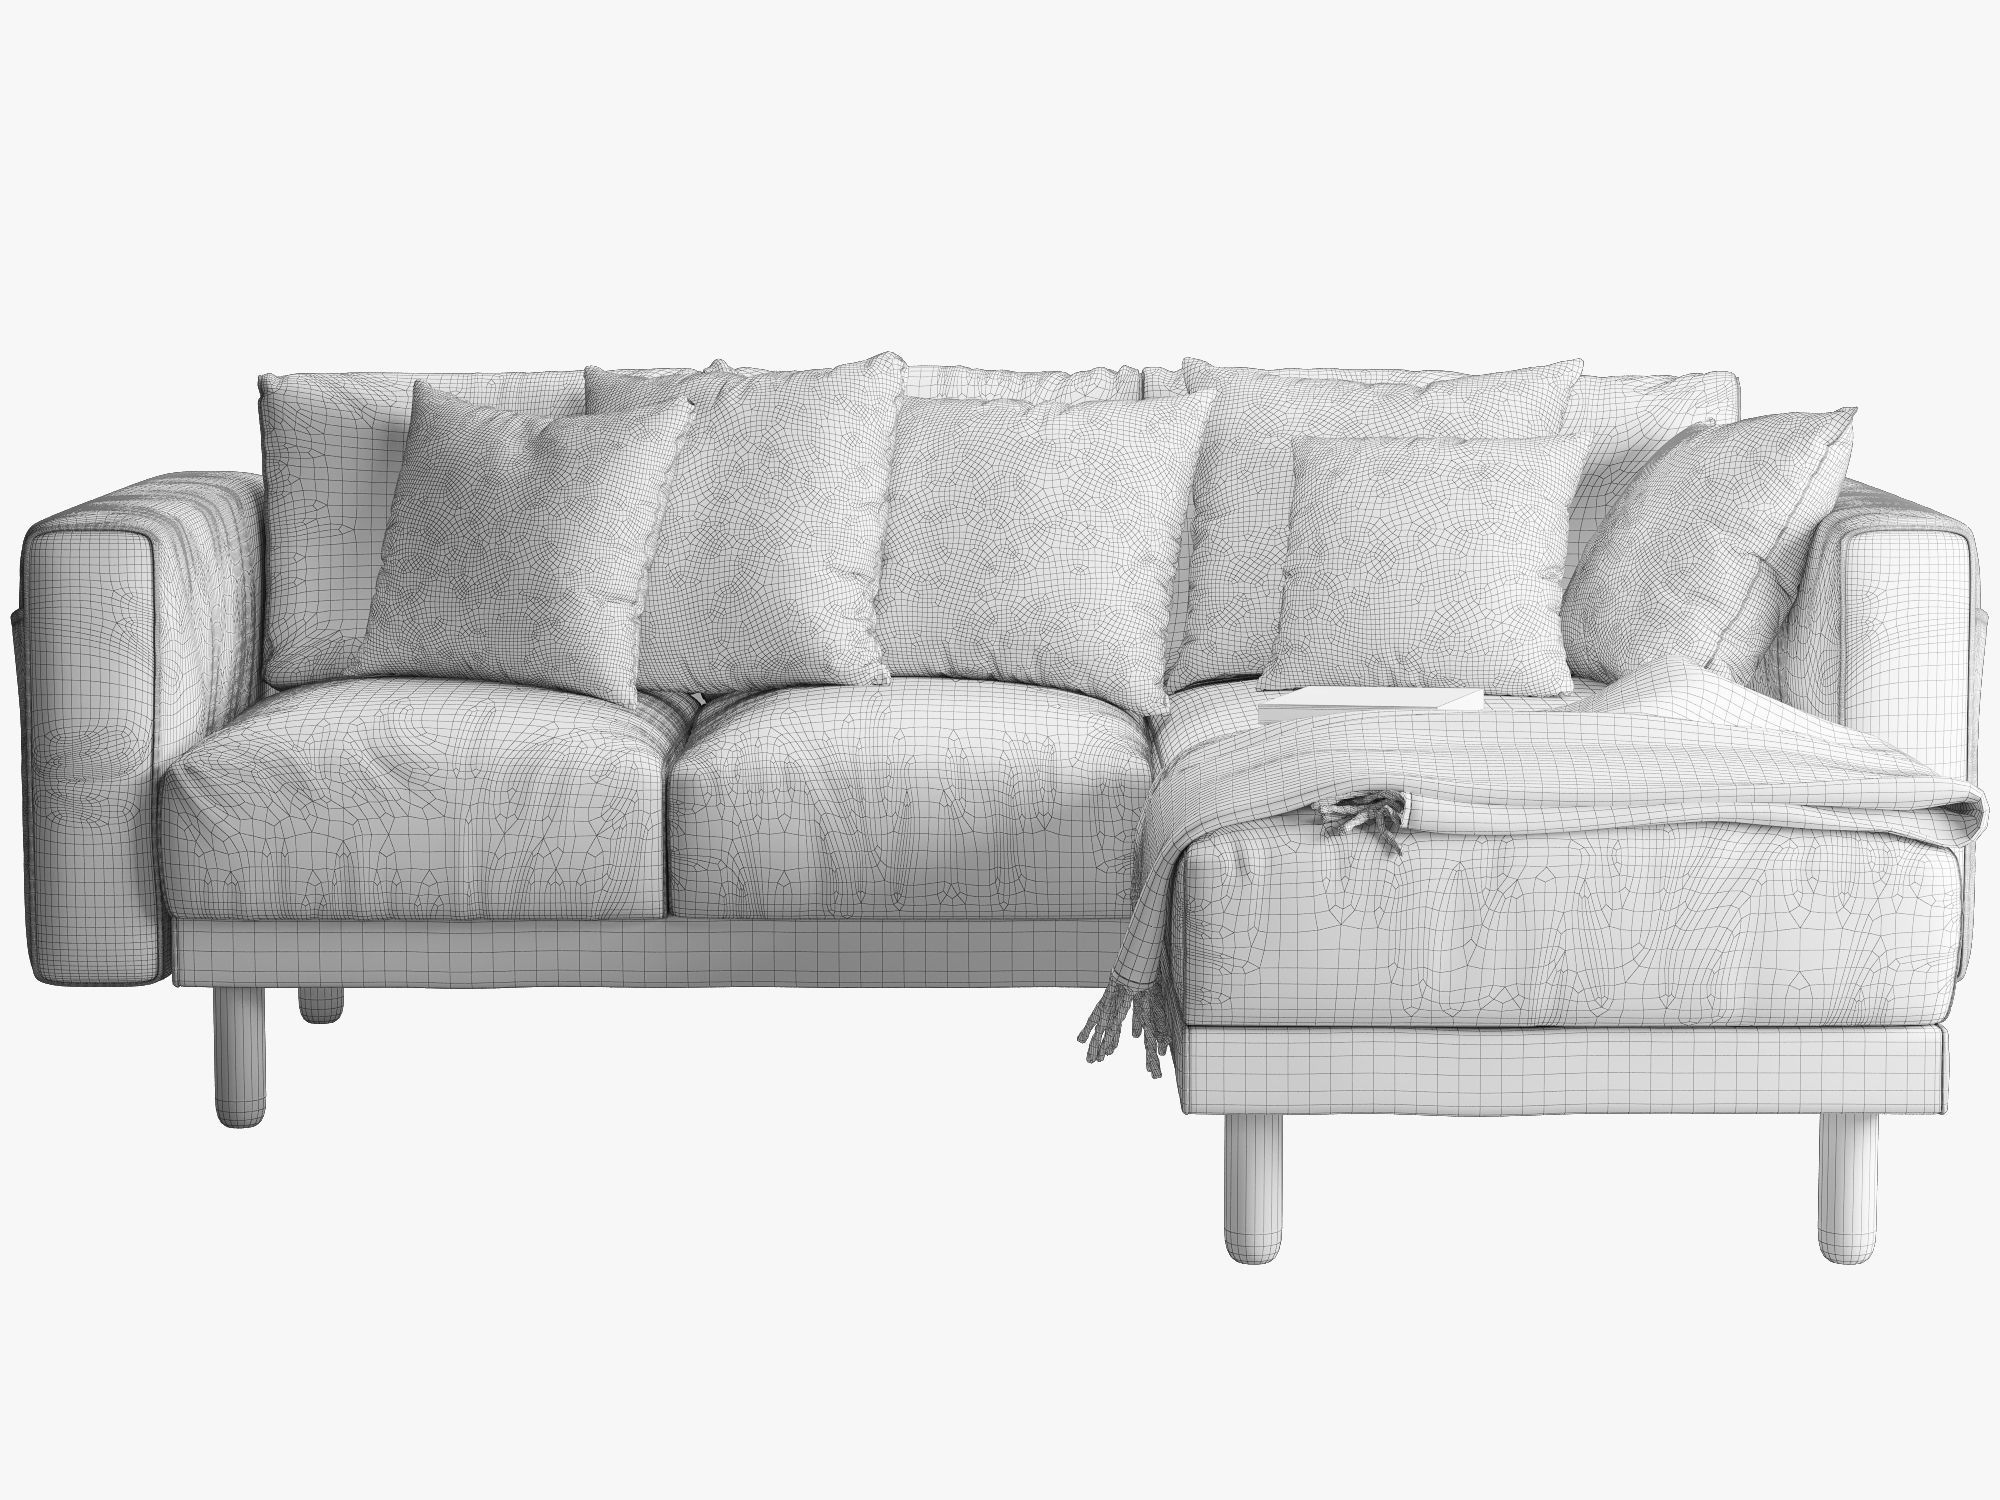 Sofa Ikea Chaise Ikea Norsborg Two Seat Sofa With Chaise Longue 3d Model